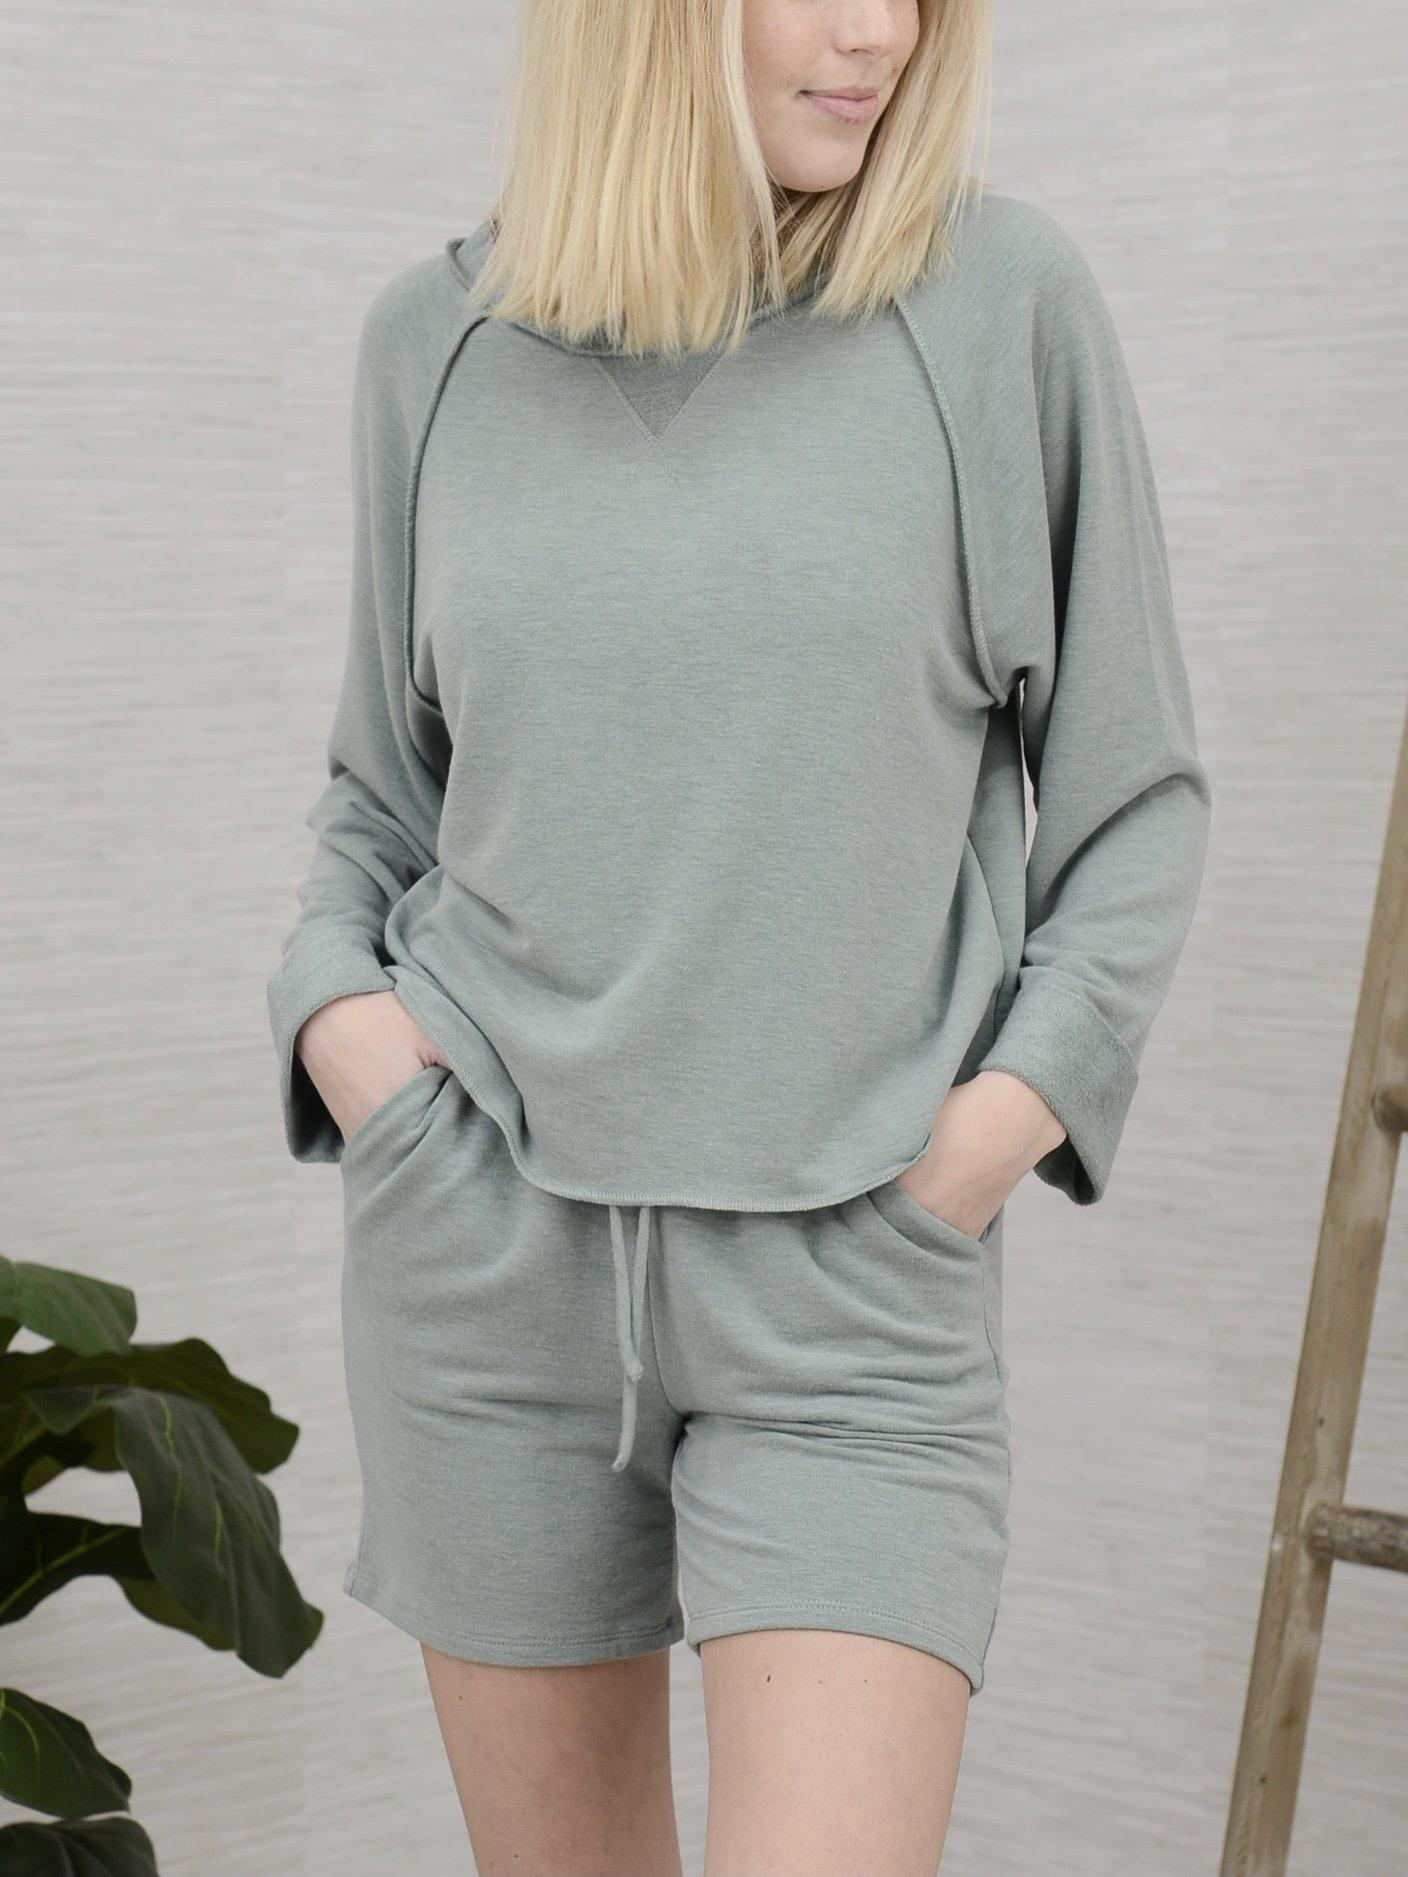 Set to Stay In Loungewear Set-Women's -New Arrivals-Runway Seven